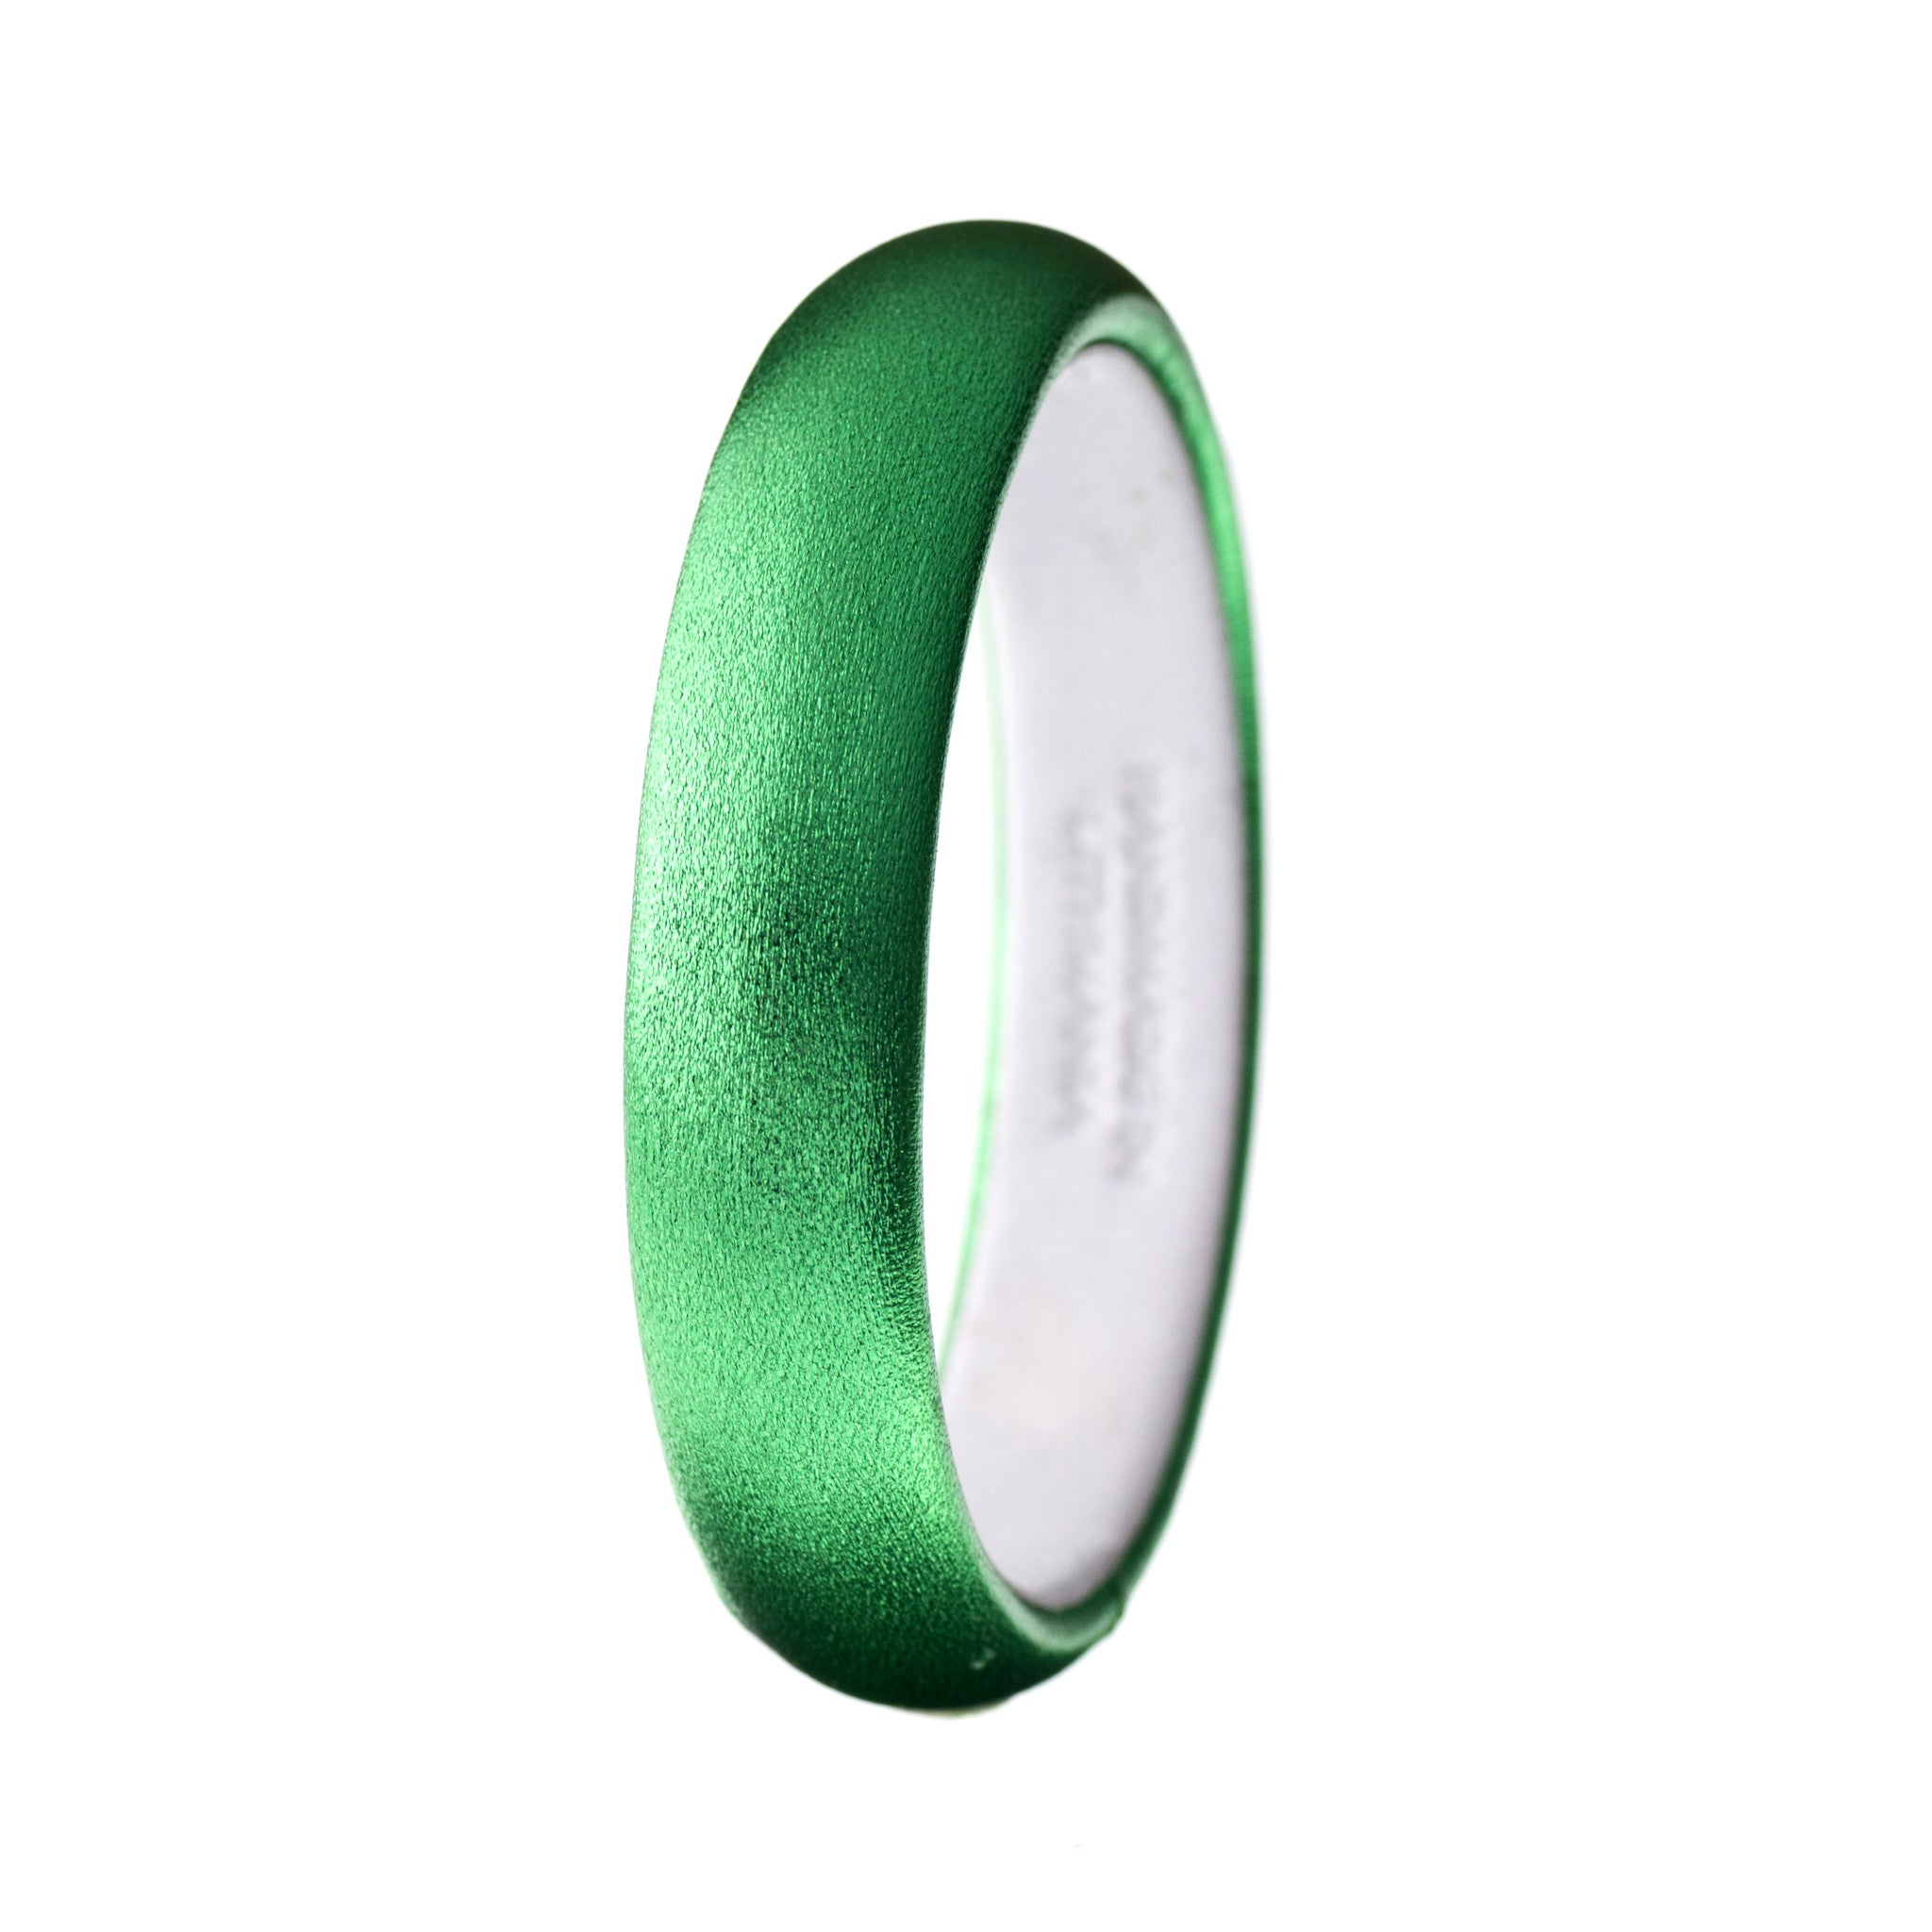 The Aria Bangle ~ Metallic Emerald Lambskin Leather Bangle Bracelet (2013 color of the year!)